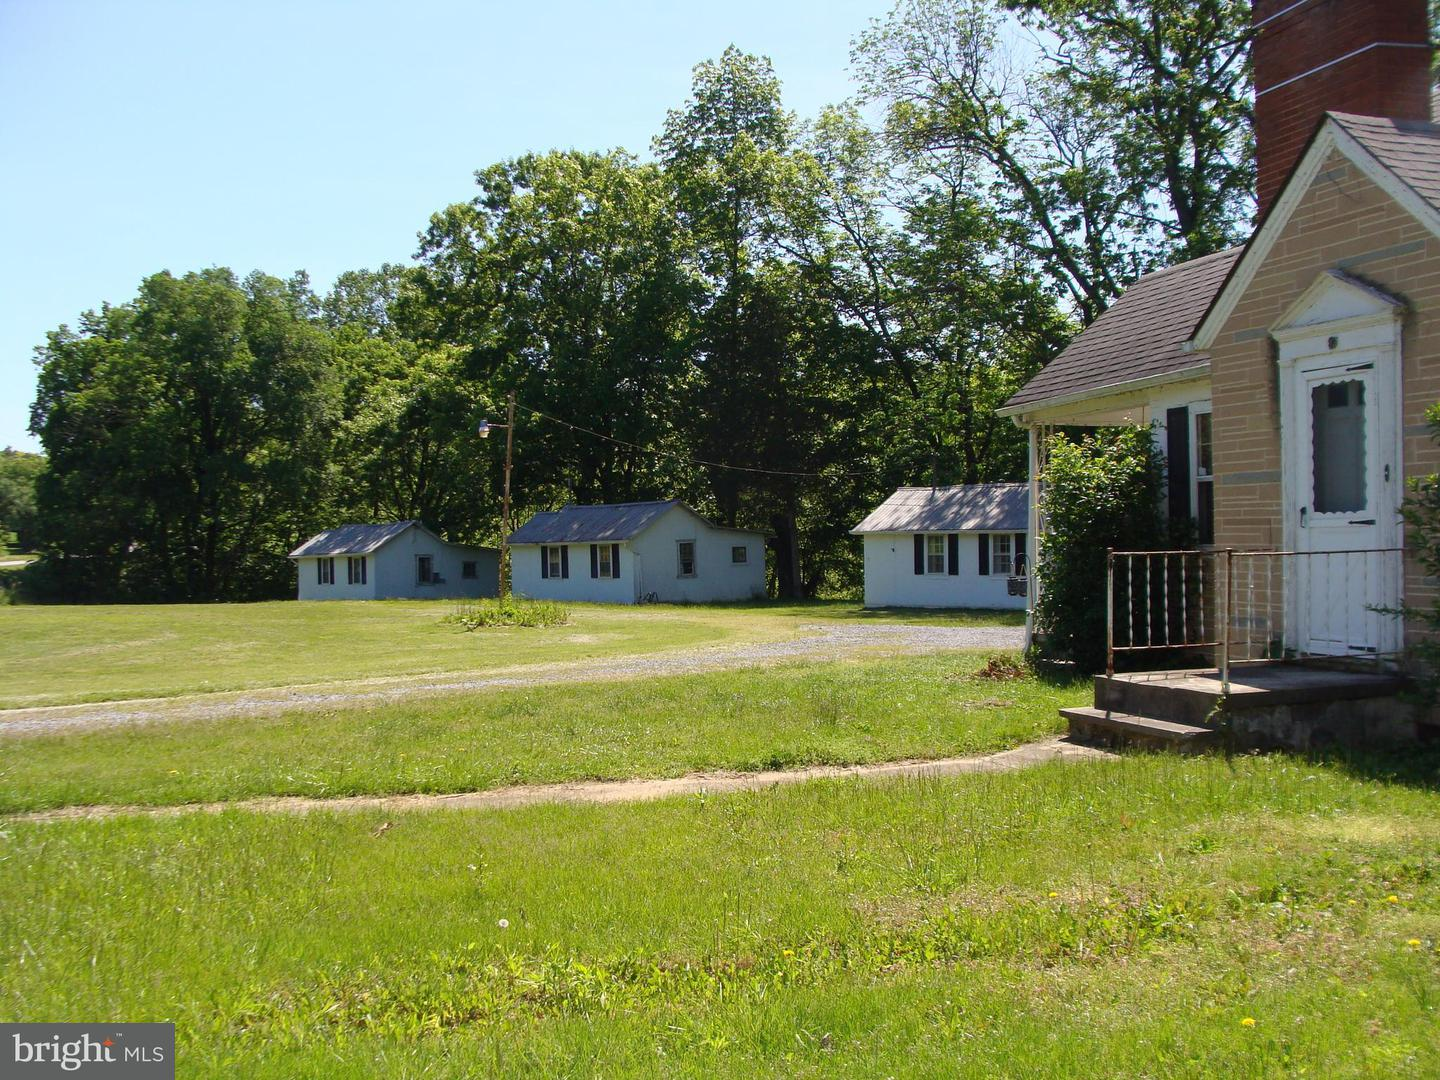 Commercial for Sale at 4673 North Fork Highway Cabins, West Virginia 26855 United States